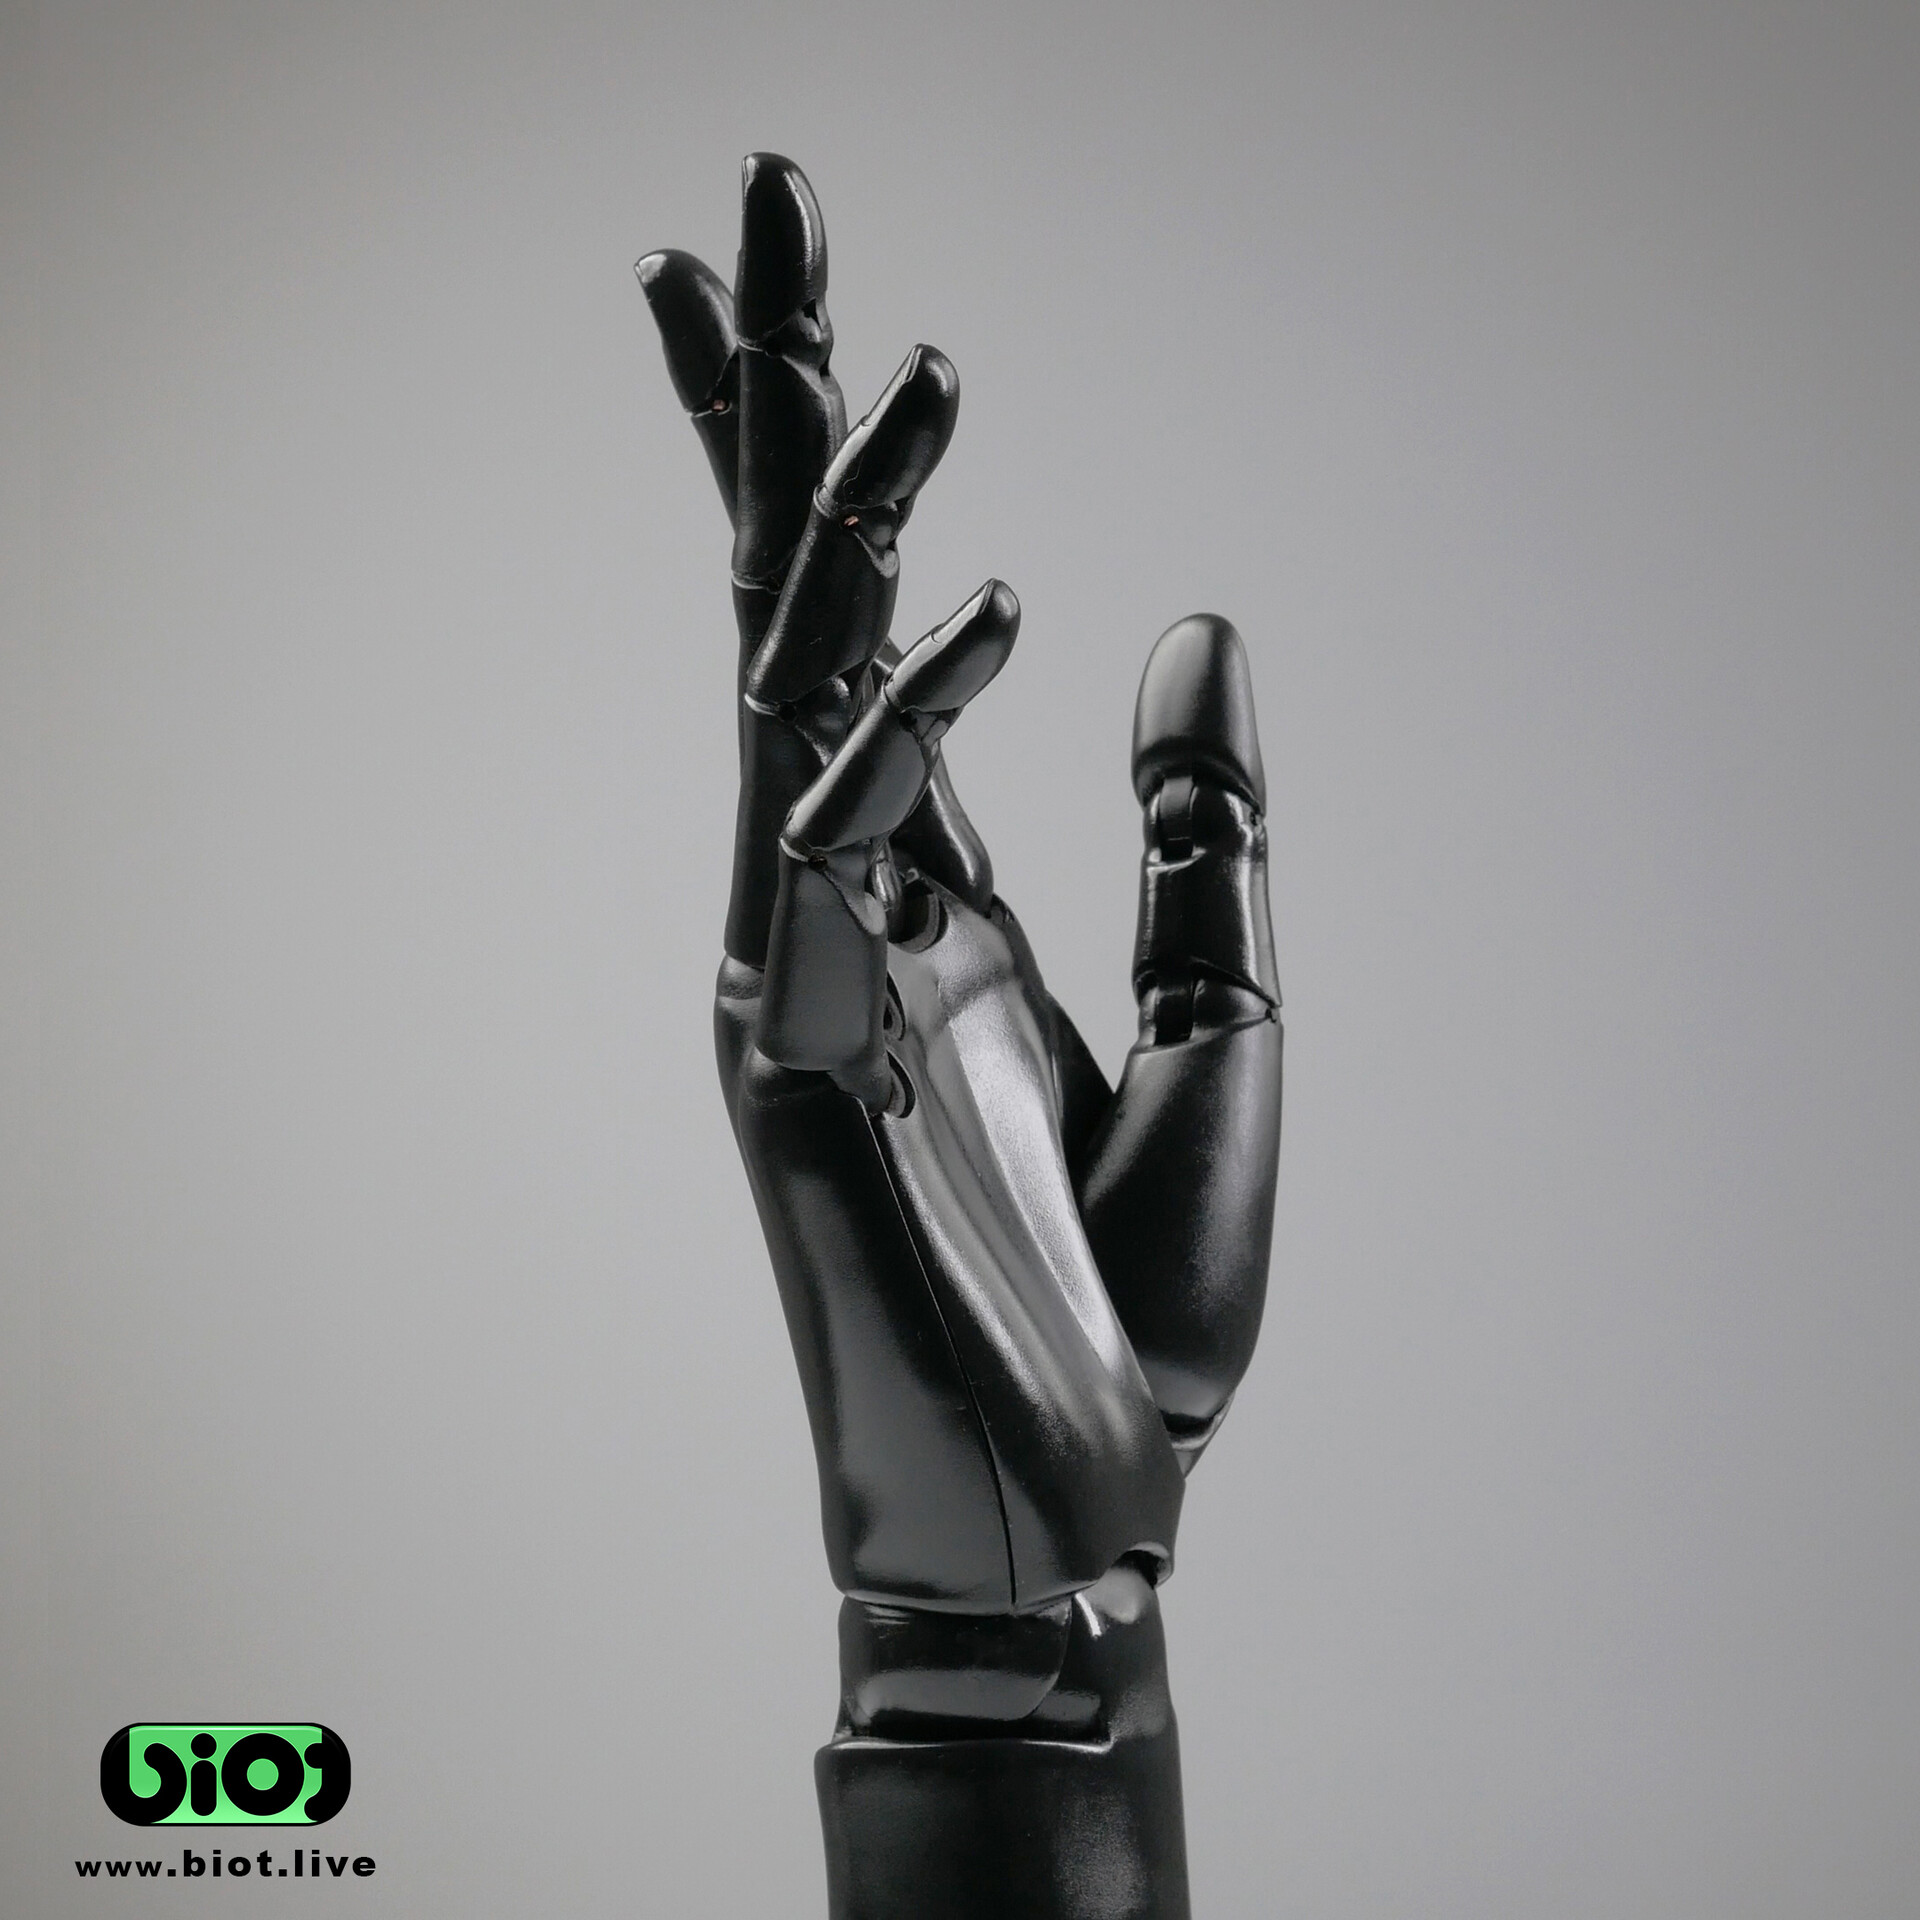 Robot hand relaxed